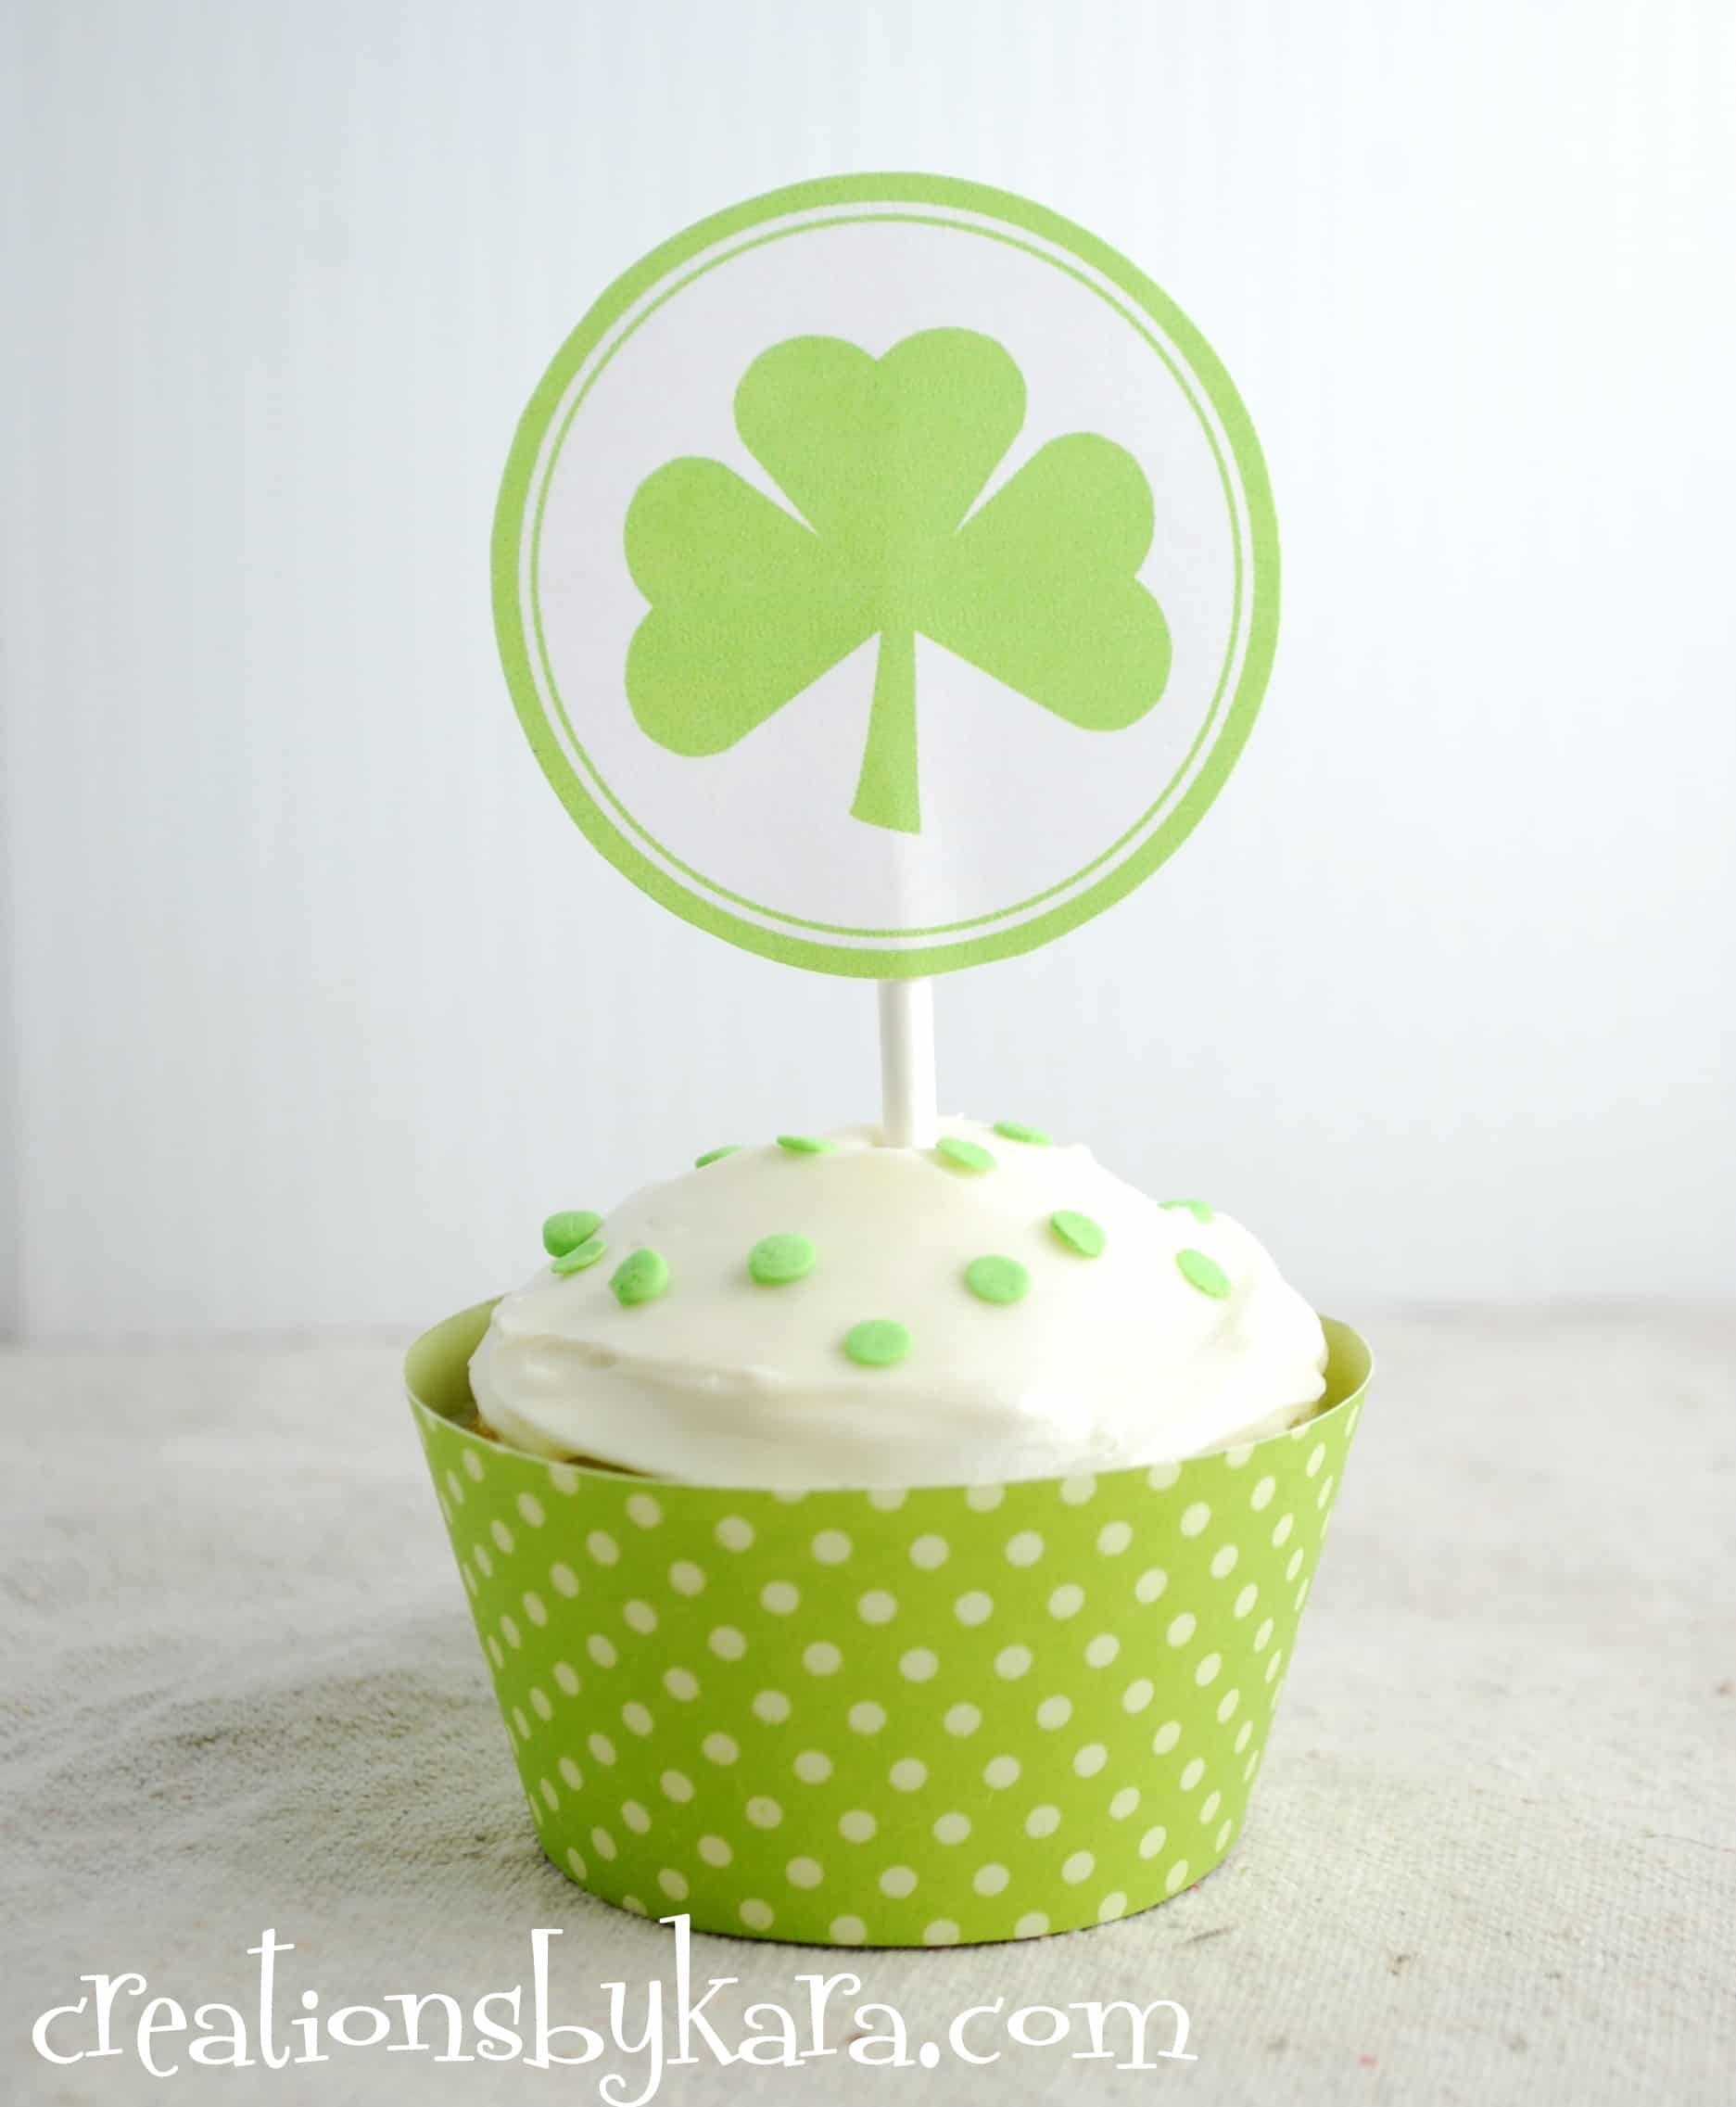 st. patrick's day-free printable